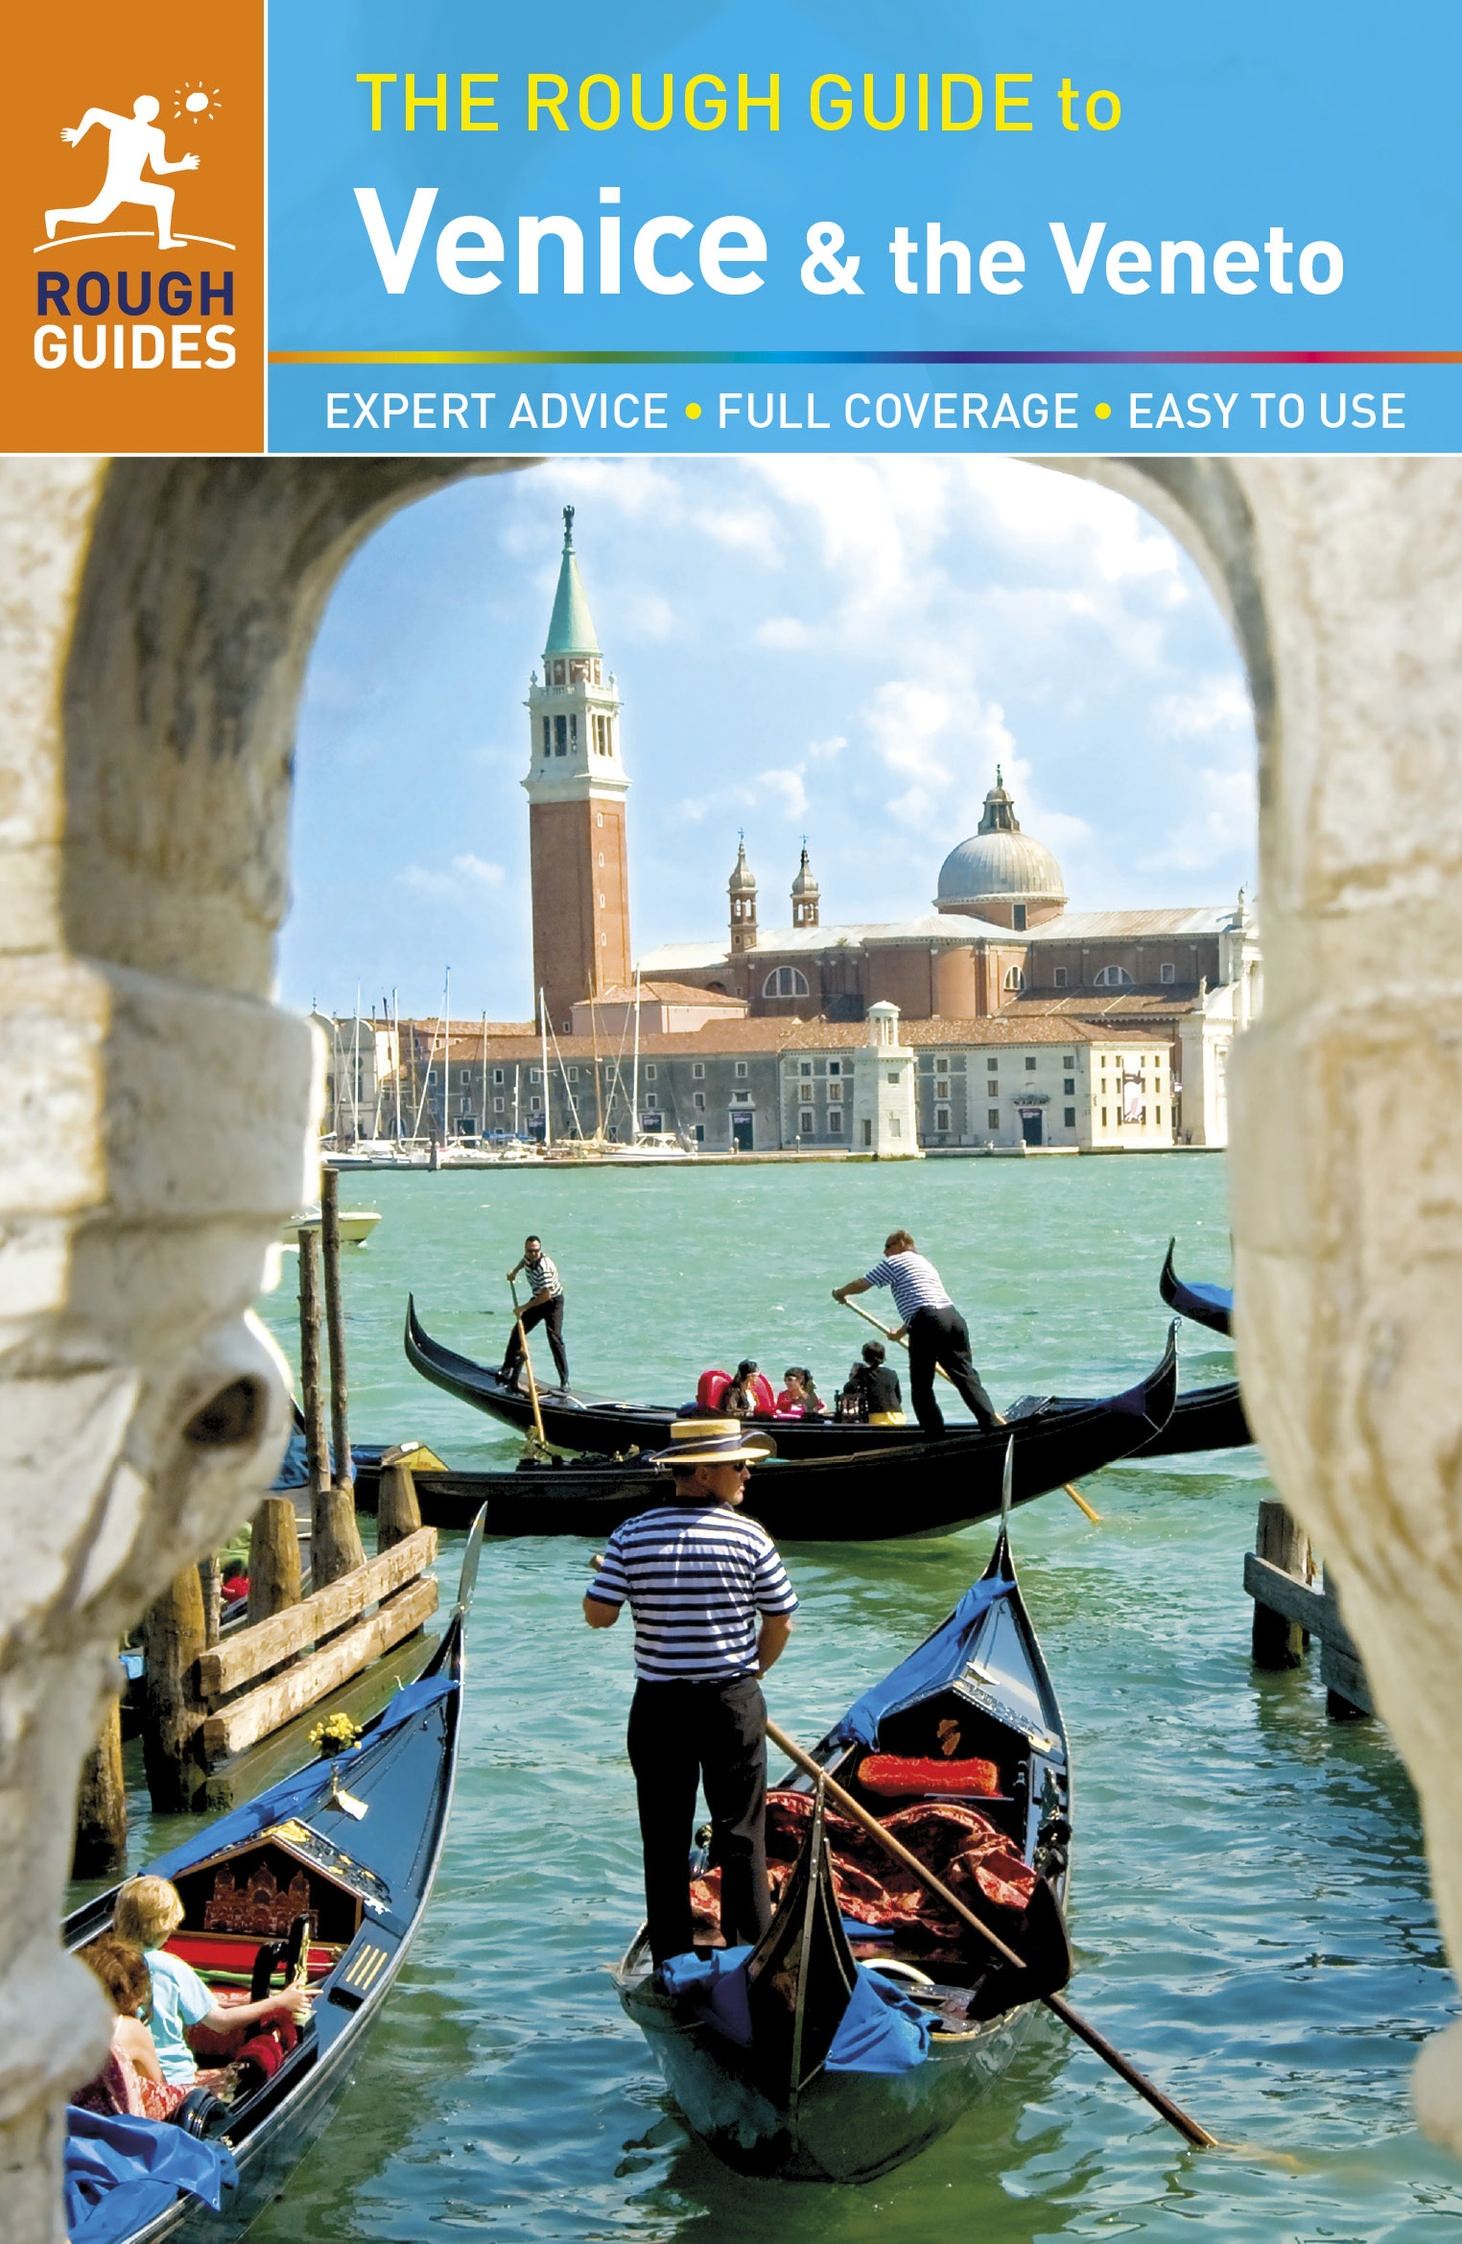 Reisgids Rough Guide Venice -Venetië & the Veneto    Rough Guide